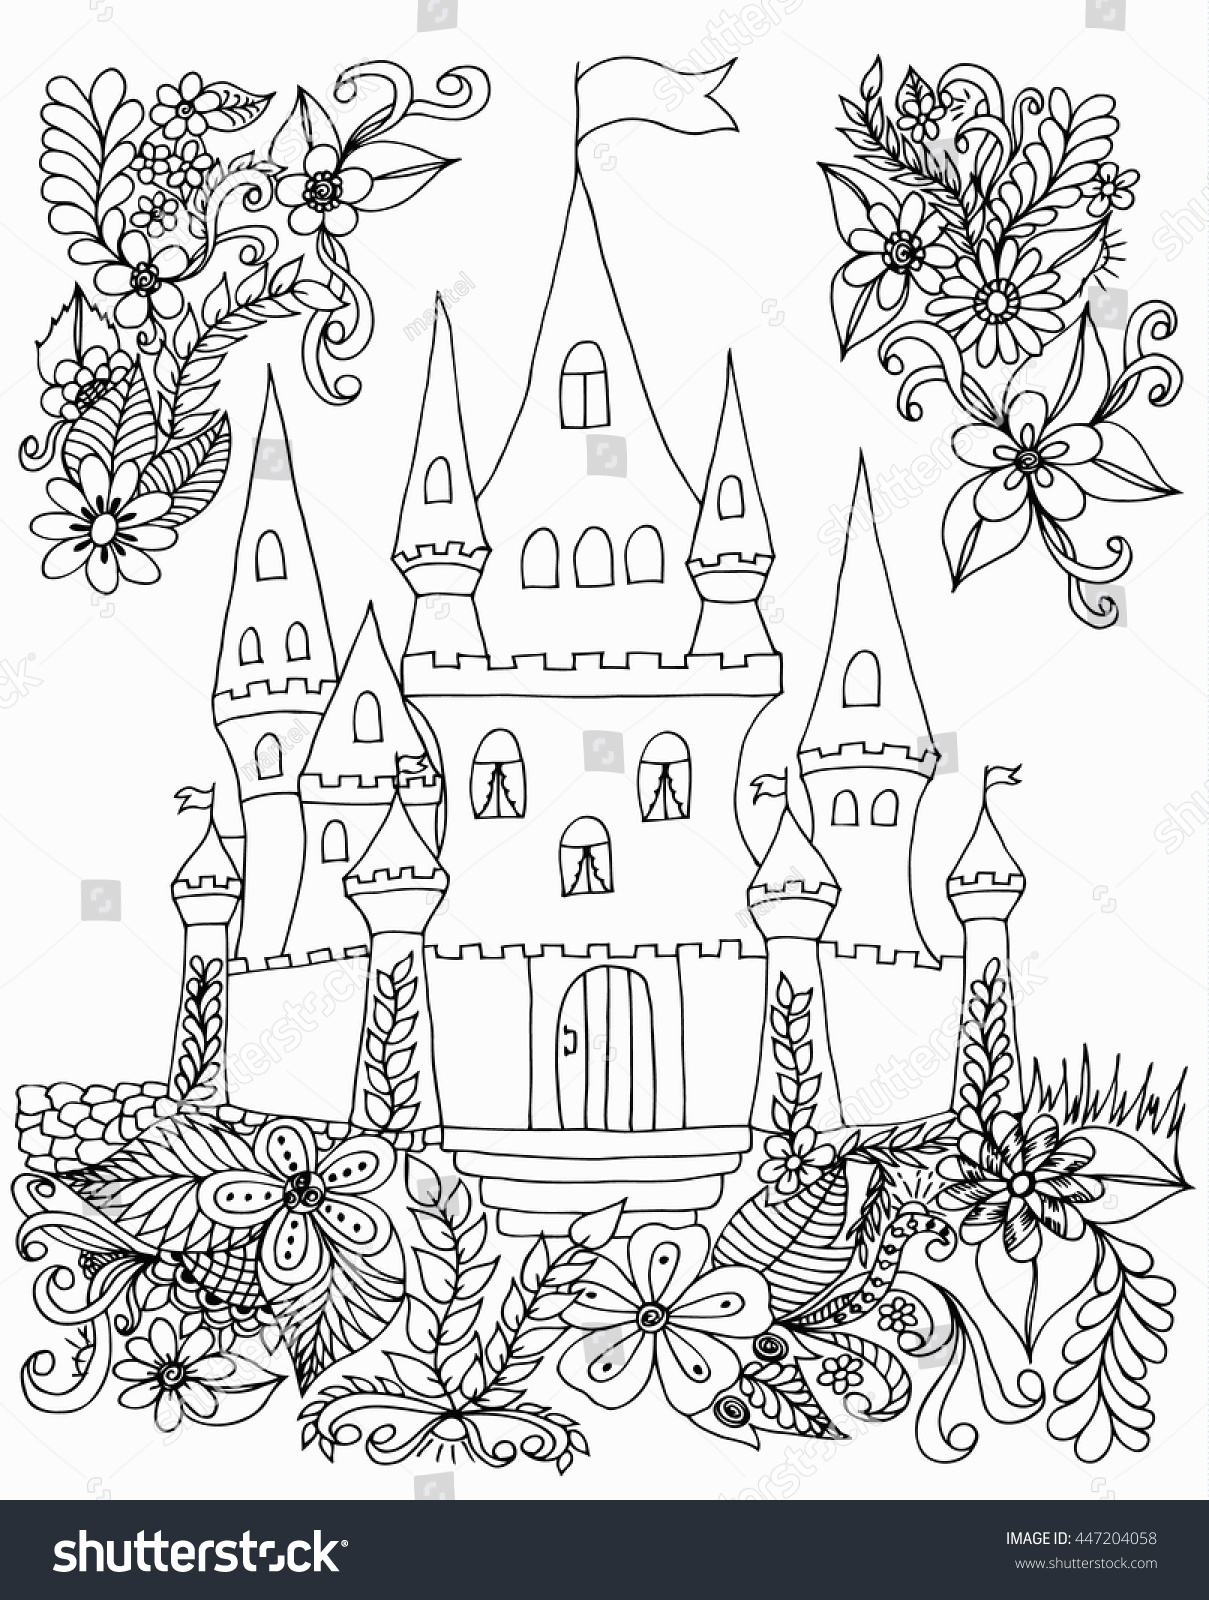 Coloring book landmark for adults - Vector Illustration Zentangl Castle With Flowers Coloring Book Anti Stress For Adults Black And